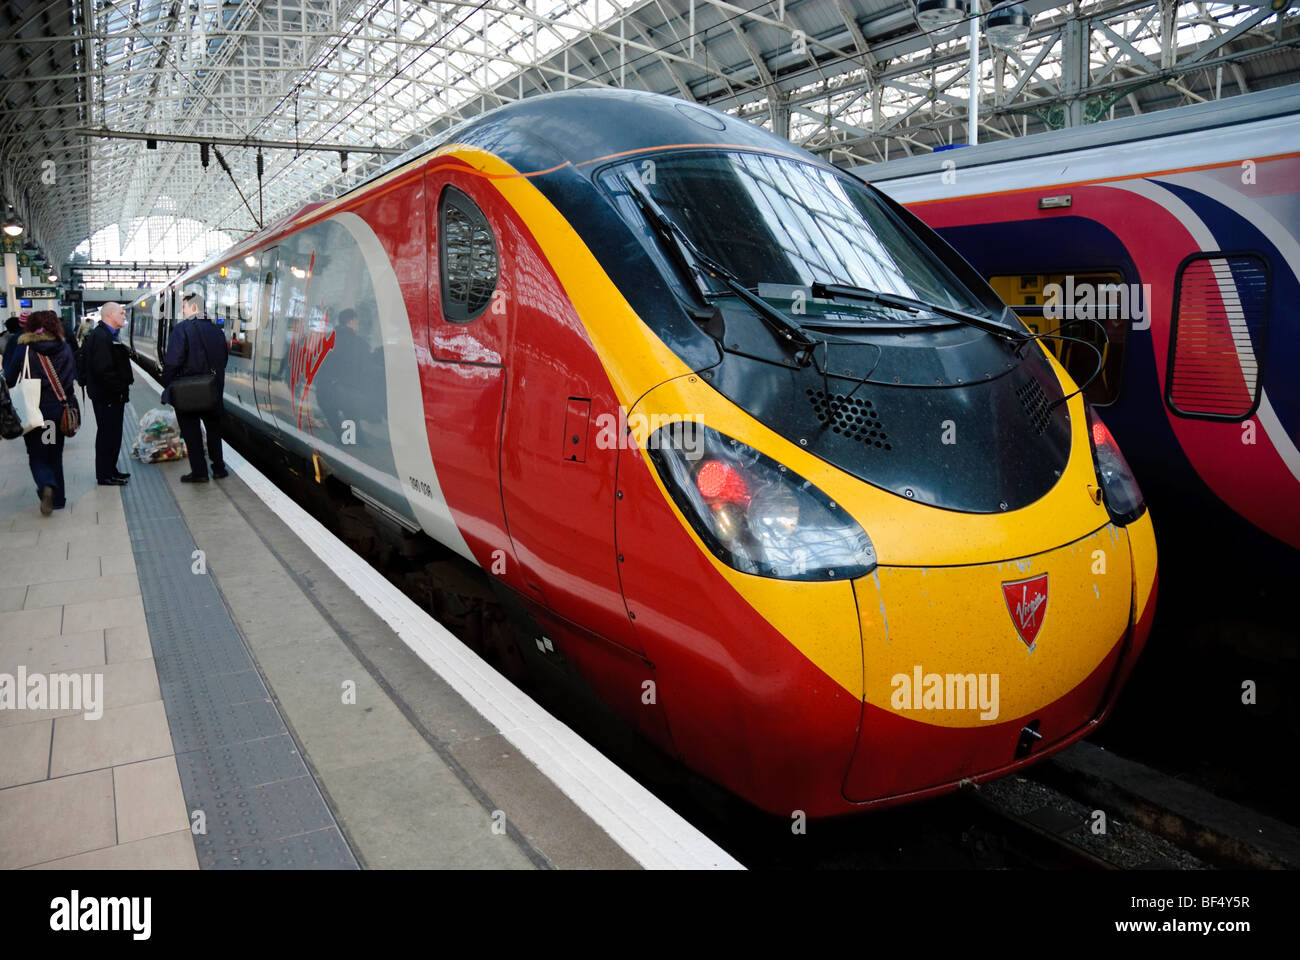 Intercity express tilt train operated by Virgin Trains: a Pendolino train at a station. Please click for details. - Stock Image